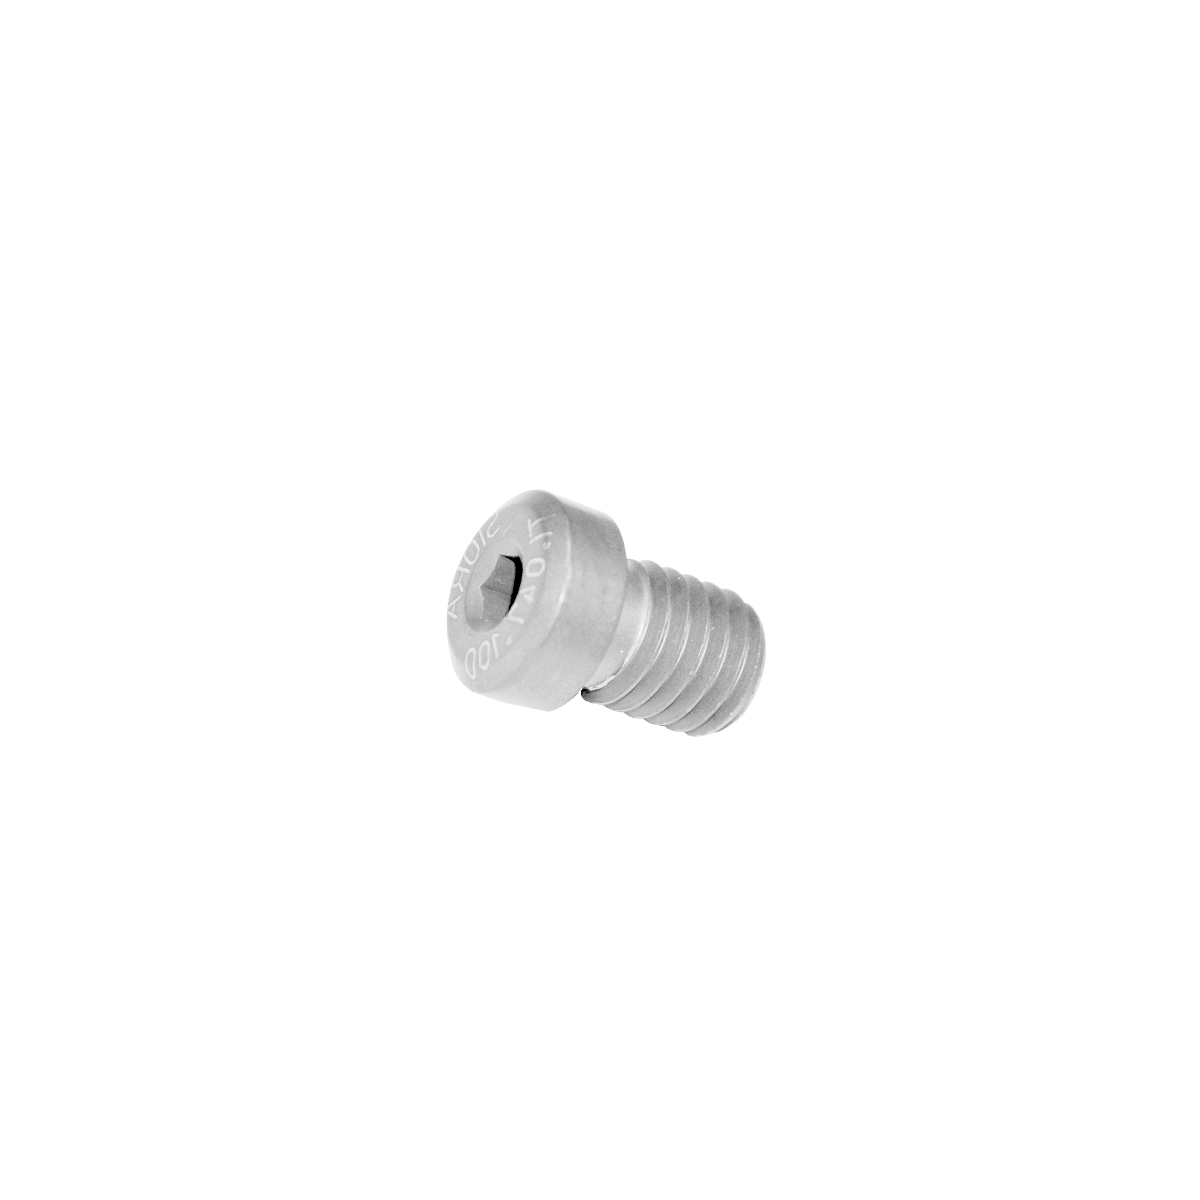 End Cap for Tibia Nail – S.S.